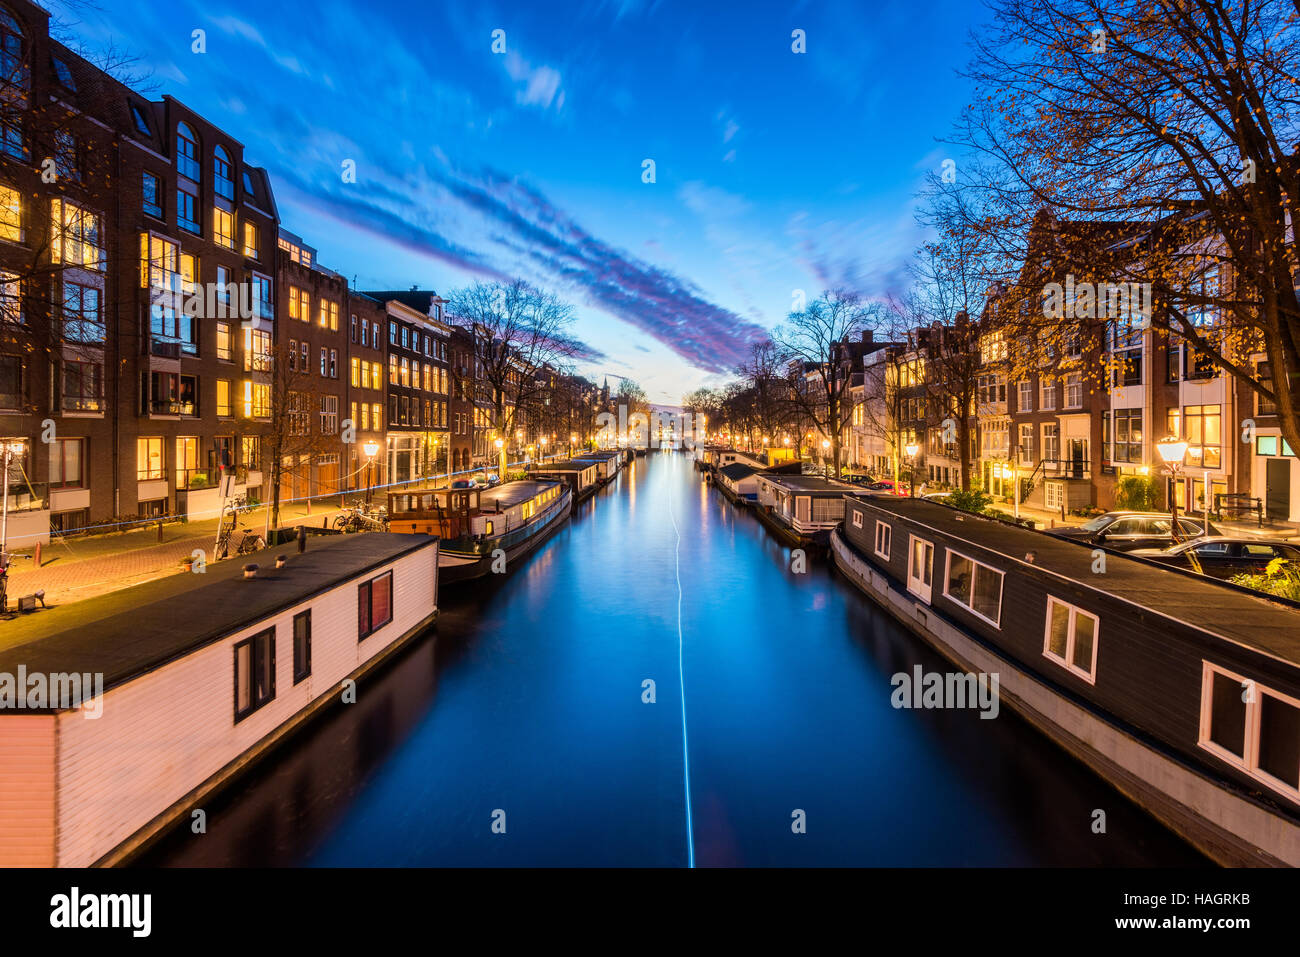 Canal avec House Boats à Amsterdam Pays-Bas Photo Stock